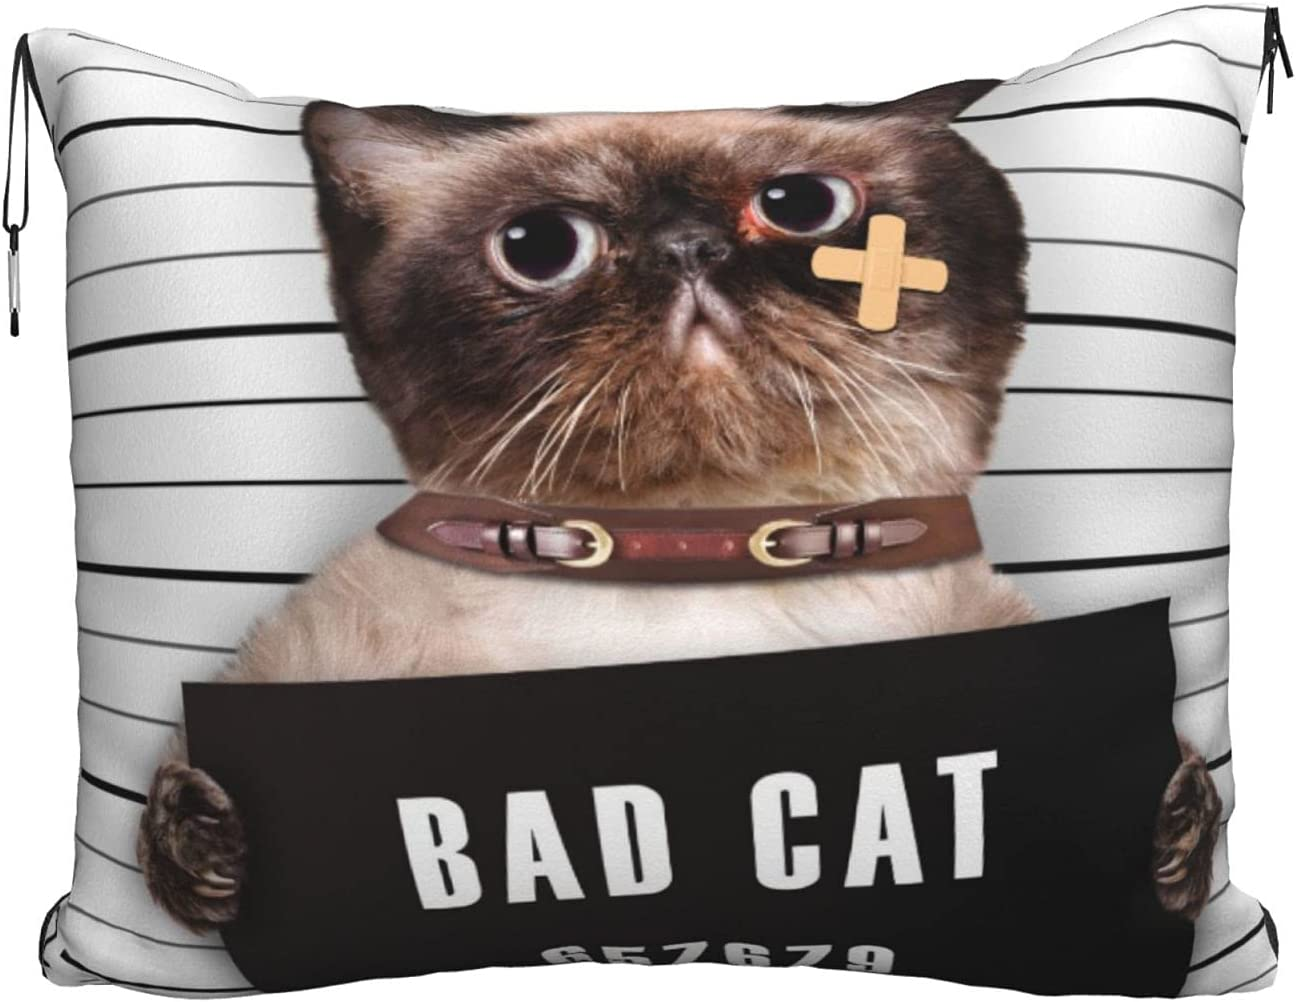 Travel Blanket Pillow Indianapolis Mall Bad Cat for in Popular brand the world Throw Ai Pillowcase